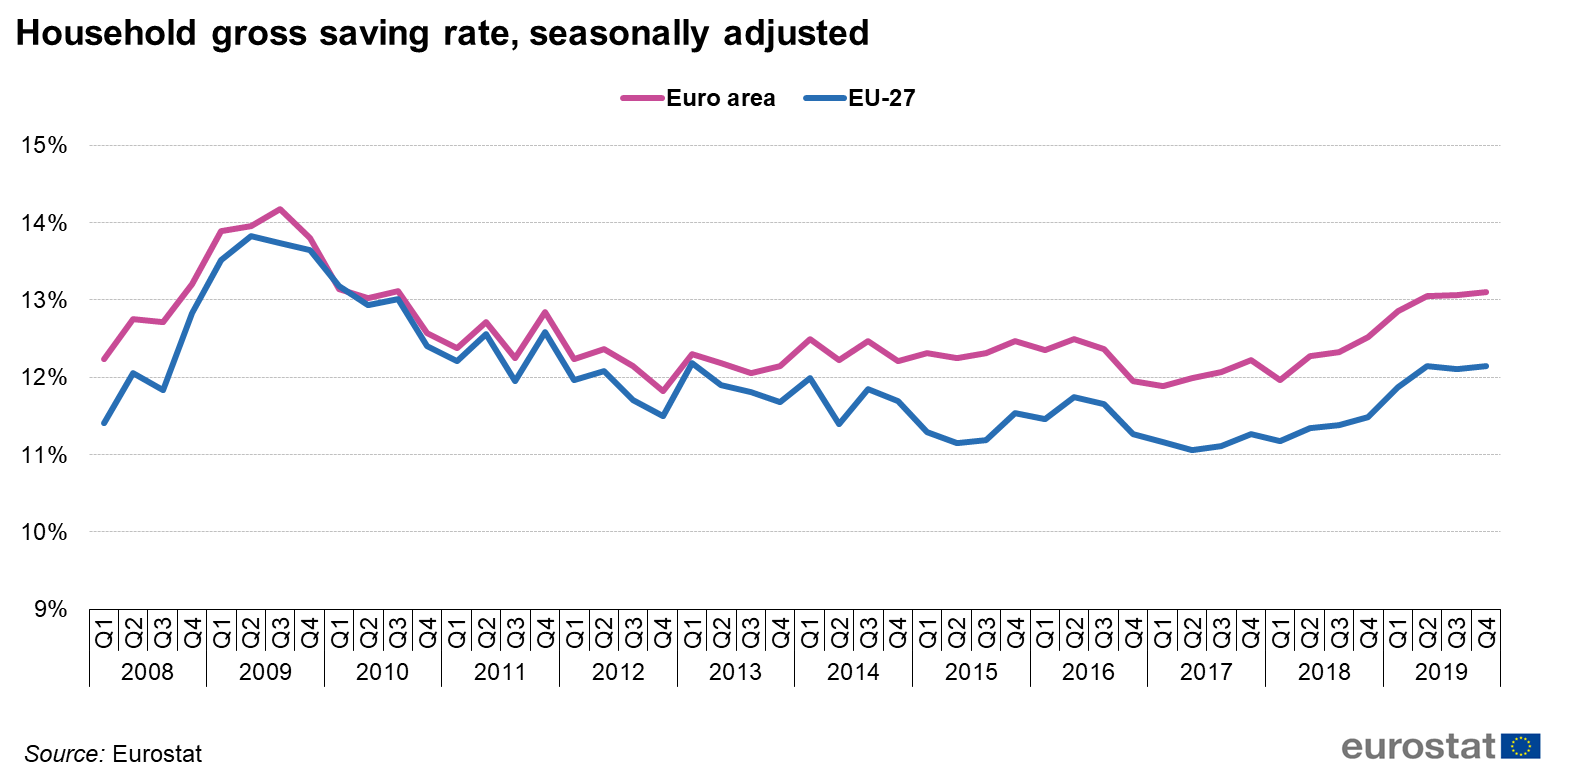 File:2019Q4 Household gross saving rate, seasonally adjusted.png